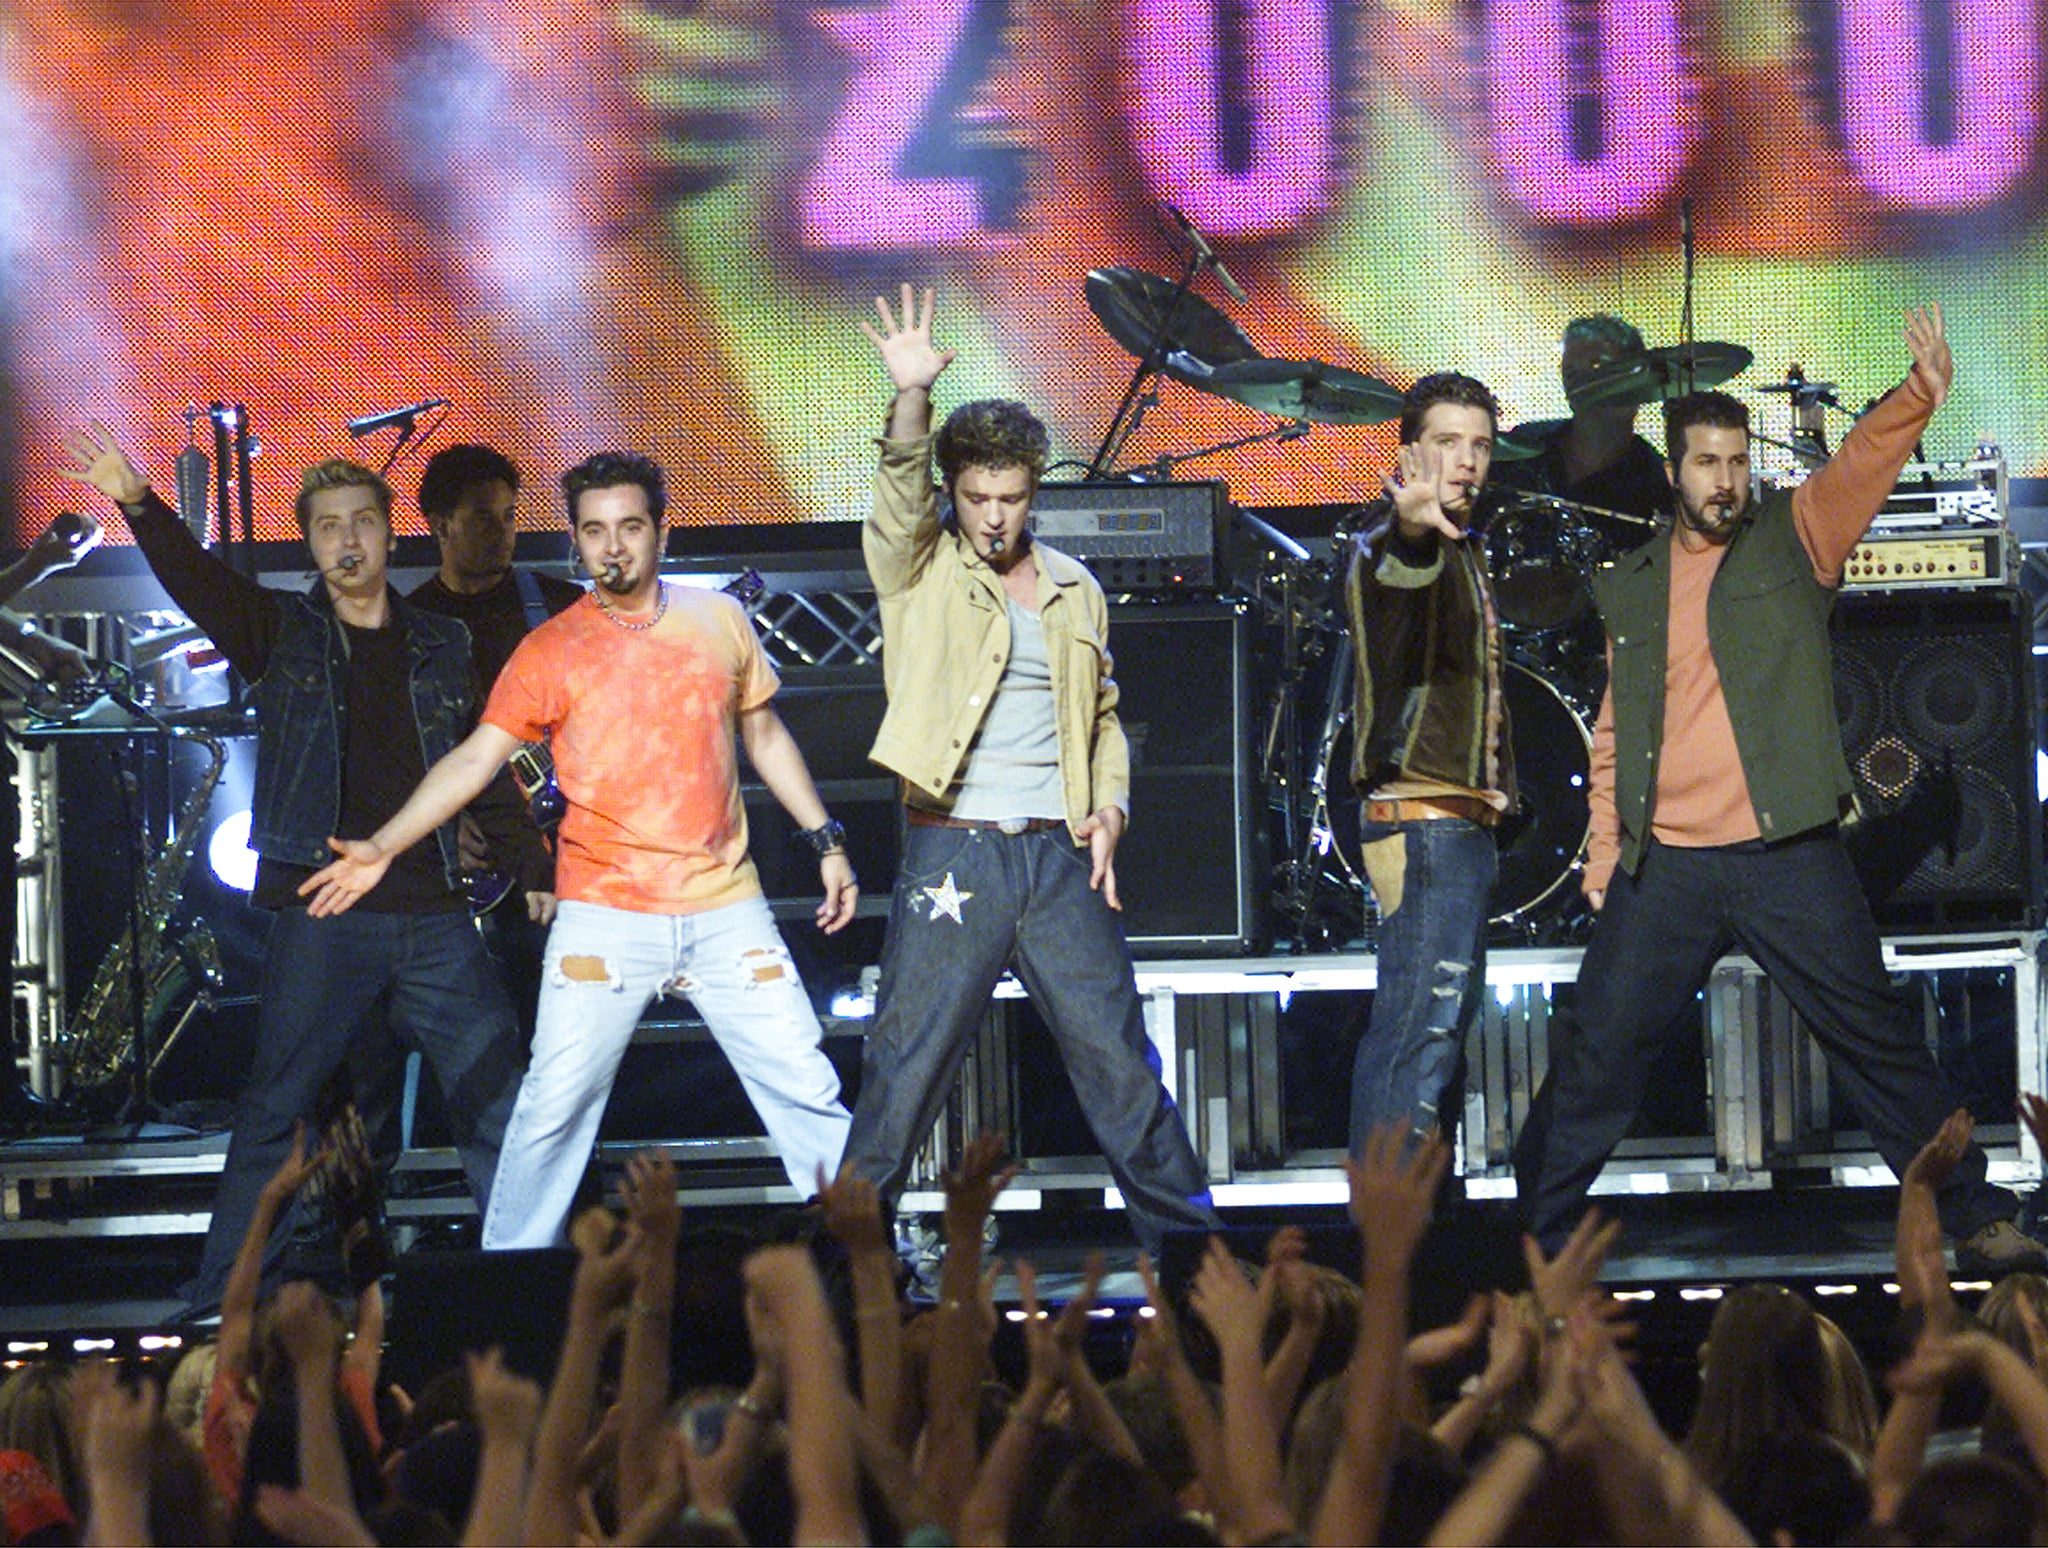 MUSIC MANIA, N'Sync performing (l to r): Lance Bass, Chris Kirkpatrick, Justin Timberlake, JC Chasez, & Joey Fatone, Aired 08/15/00, 2000